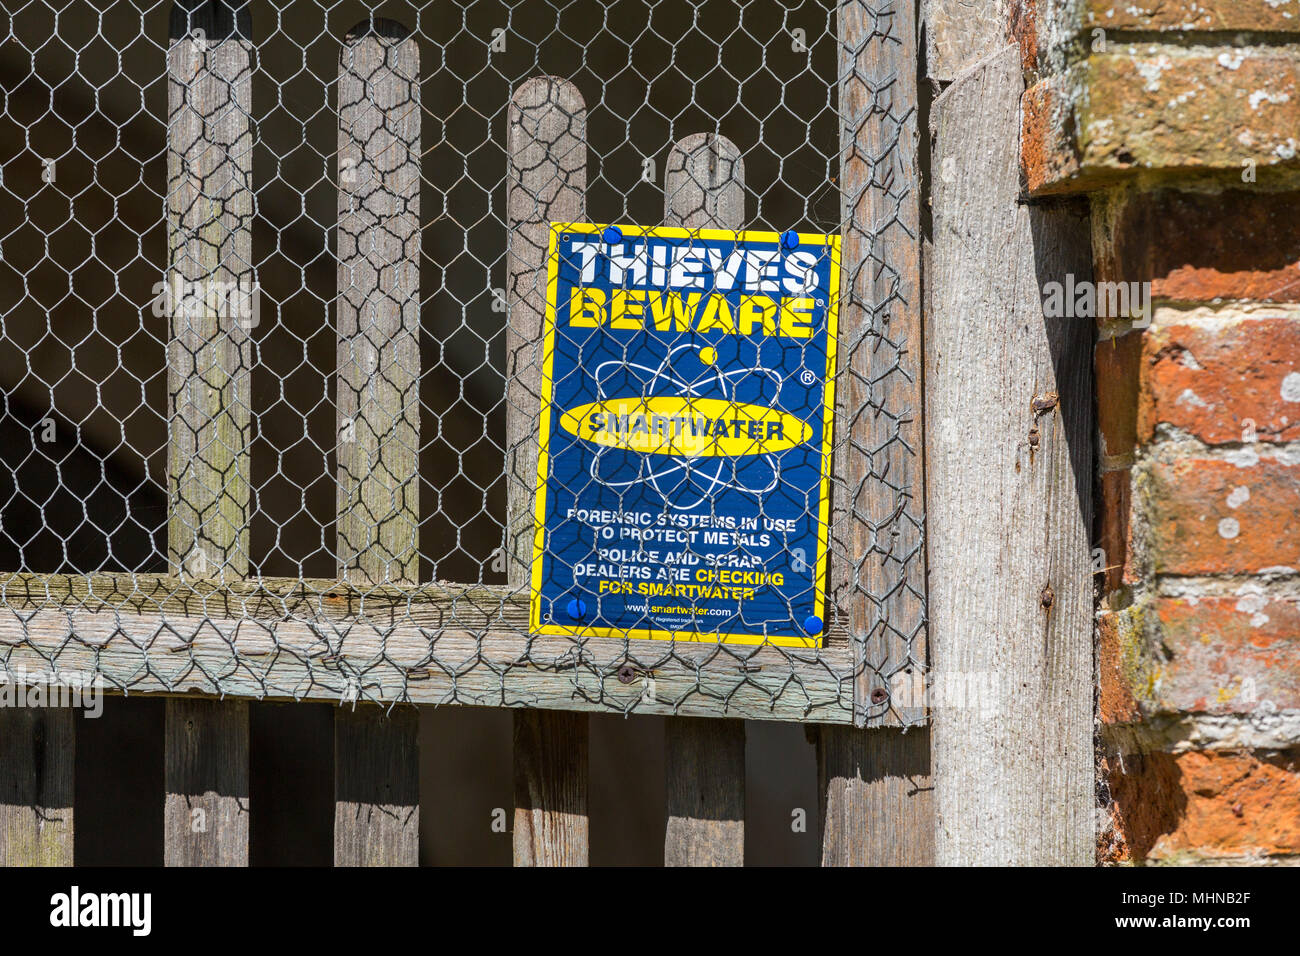 Thieves beware smartwater sign in a church. Suffolk, UK. - Stock Image